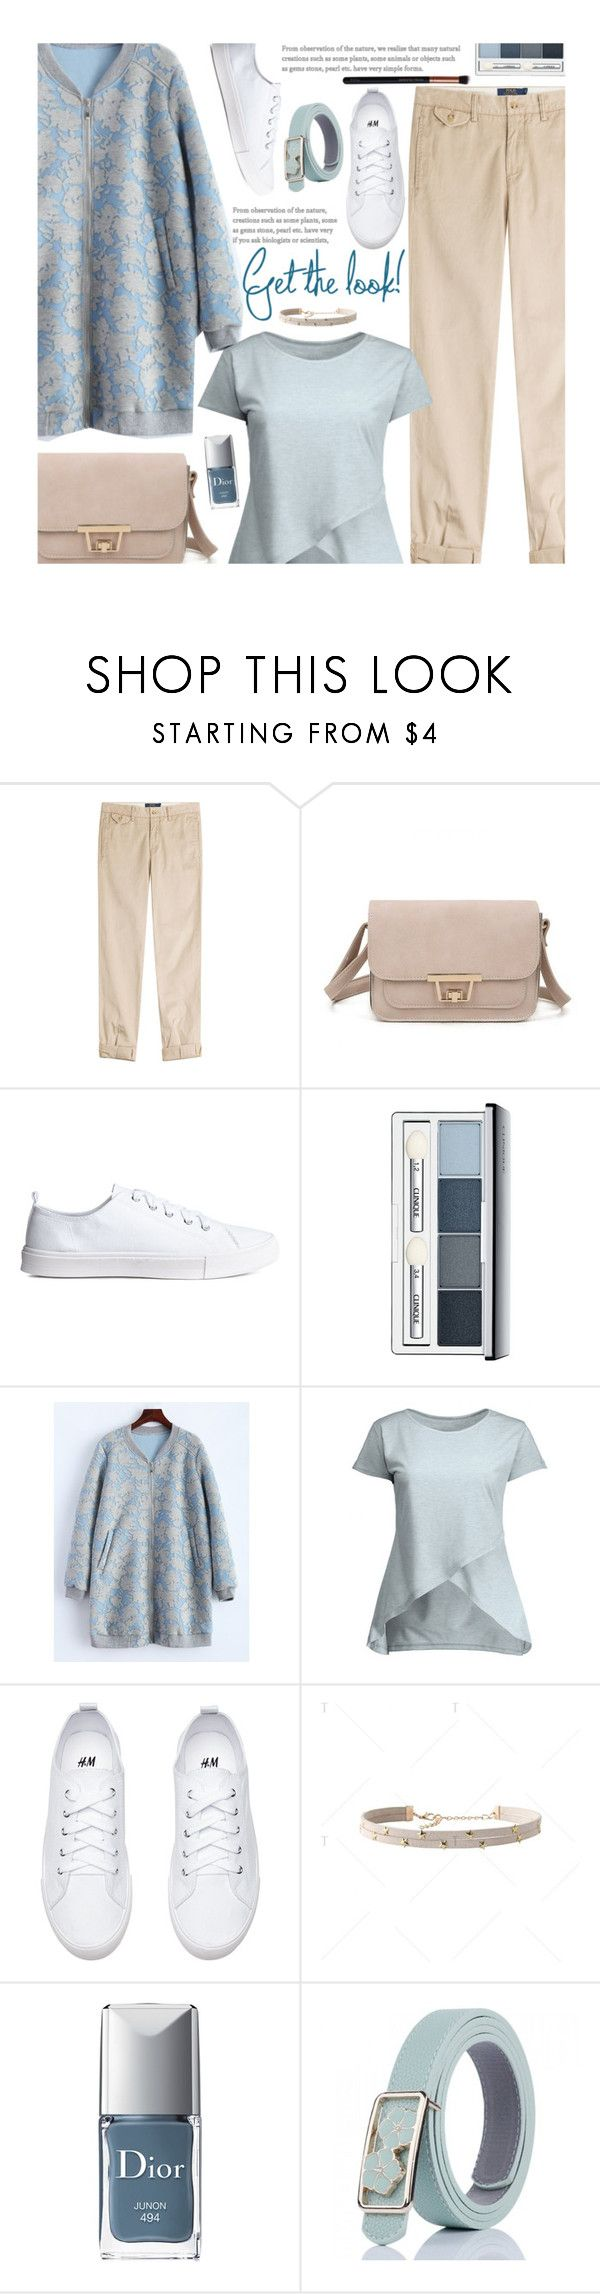 """Casual"" by beebeely-look ❤ liked on Polyvore featuring Polo Ralph Lauren, Clinique, Christian Dior, M.O.T.D Cosmetics, casual, sporty, pastels, twinkledeals and Spring2017"